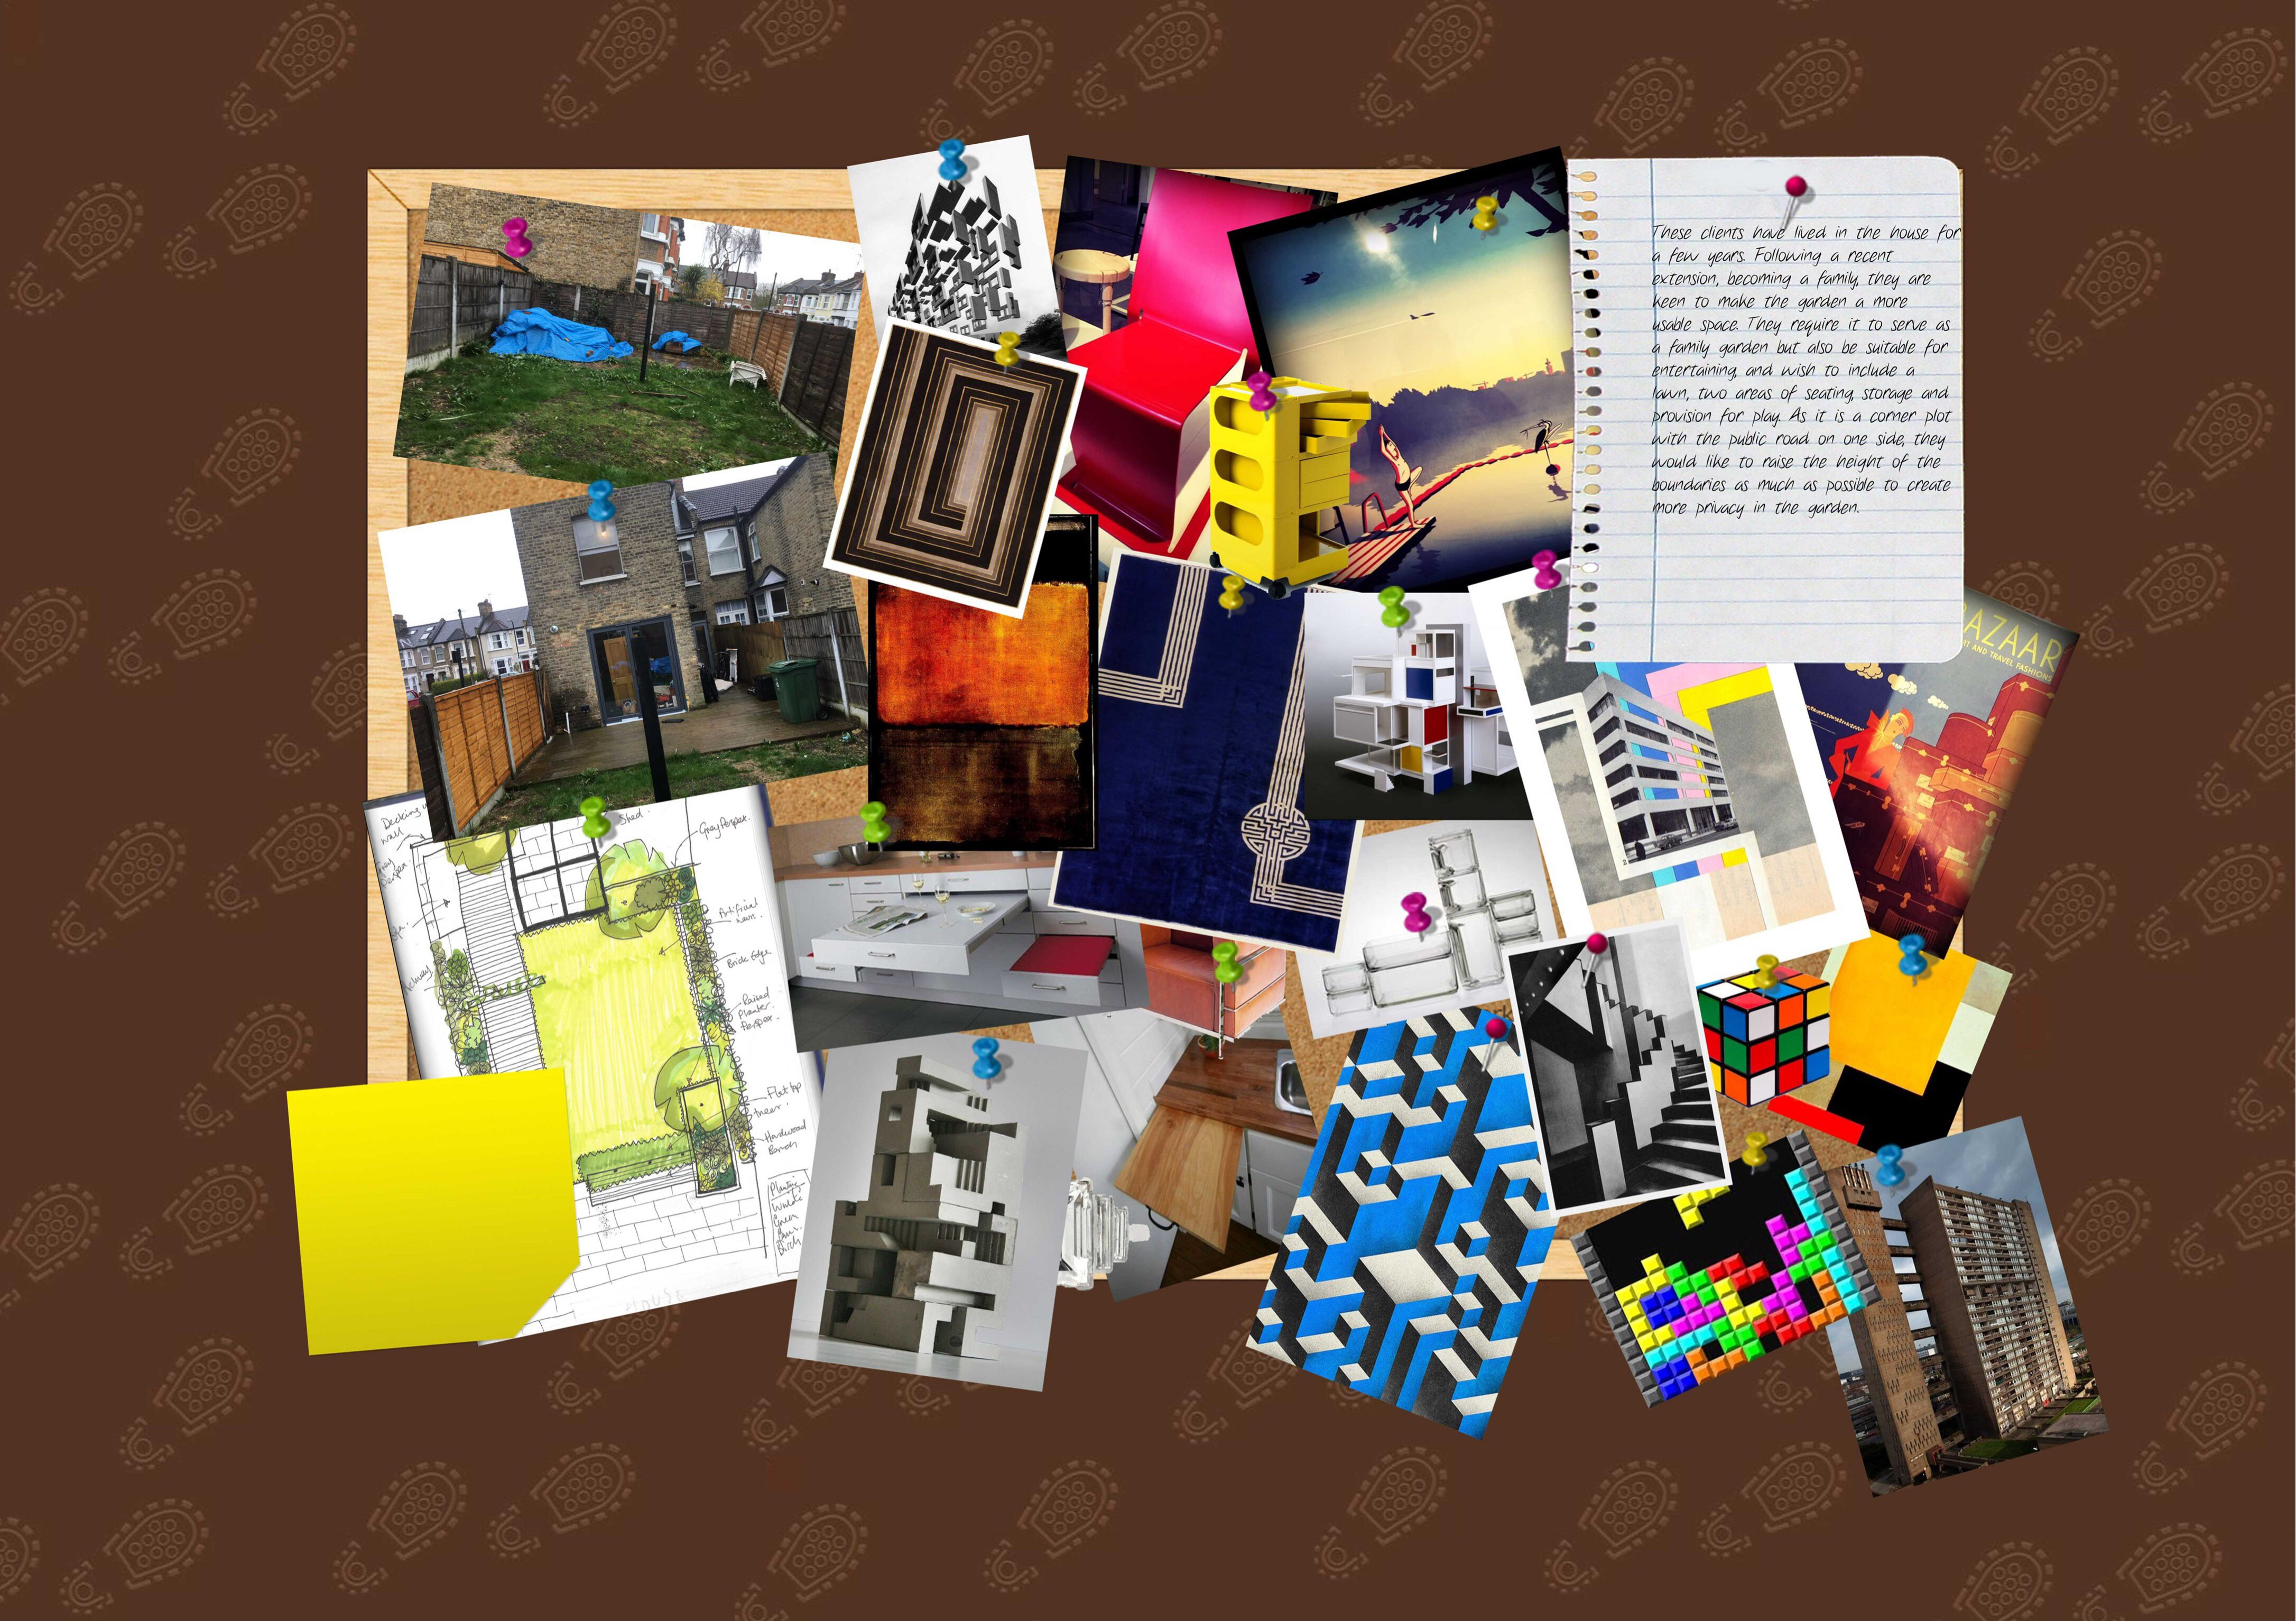 Influences here come from Bauhaus, Trellick Tower and Rubik's cube